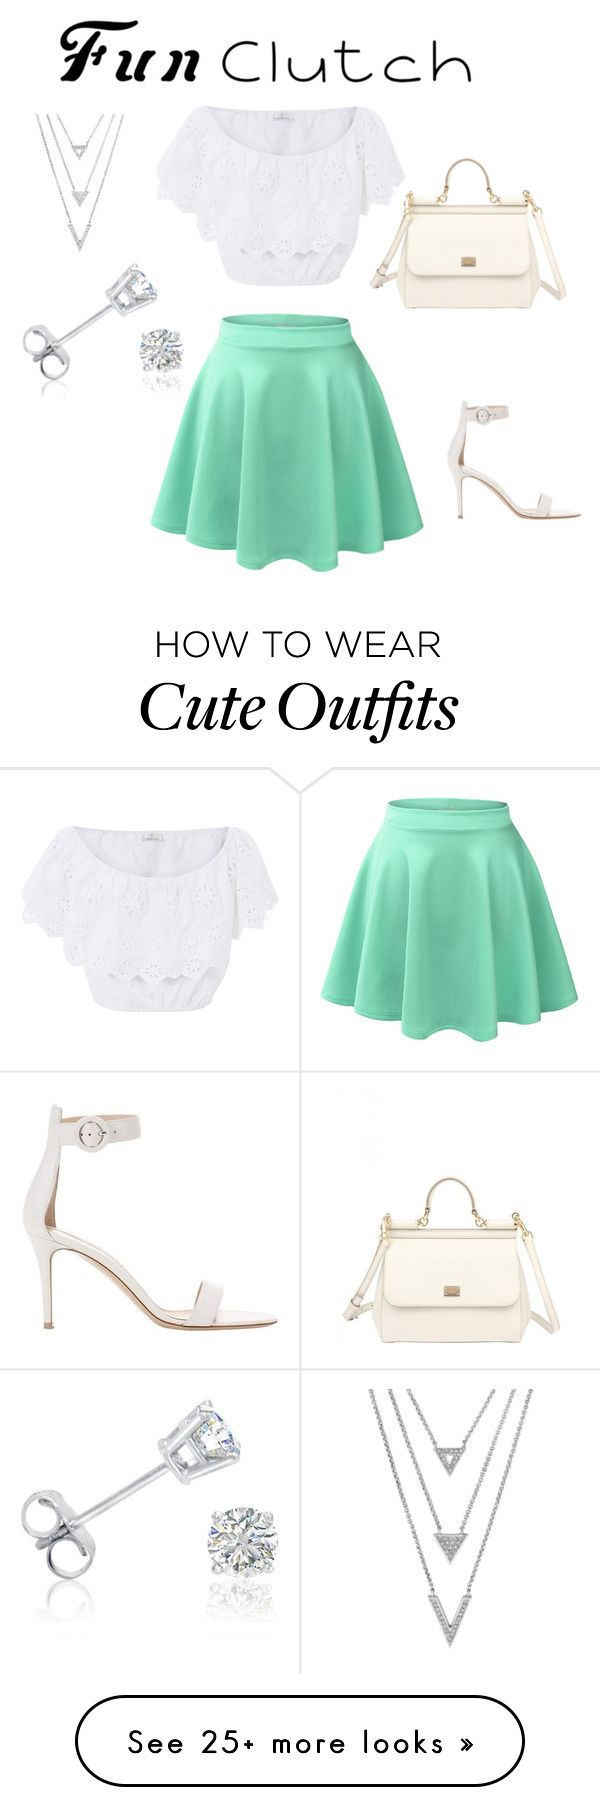 """""""The quick outfit"""" by vickylin070903 on Polyvore featuring Miguelina, LE3NO, Gianvito Rossi, Dolce&Gabbana and Amanda Rose Collection"""